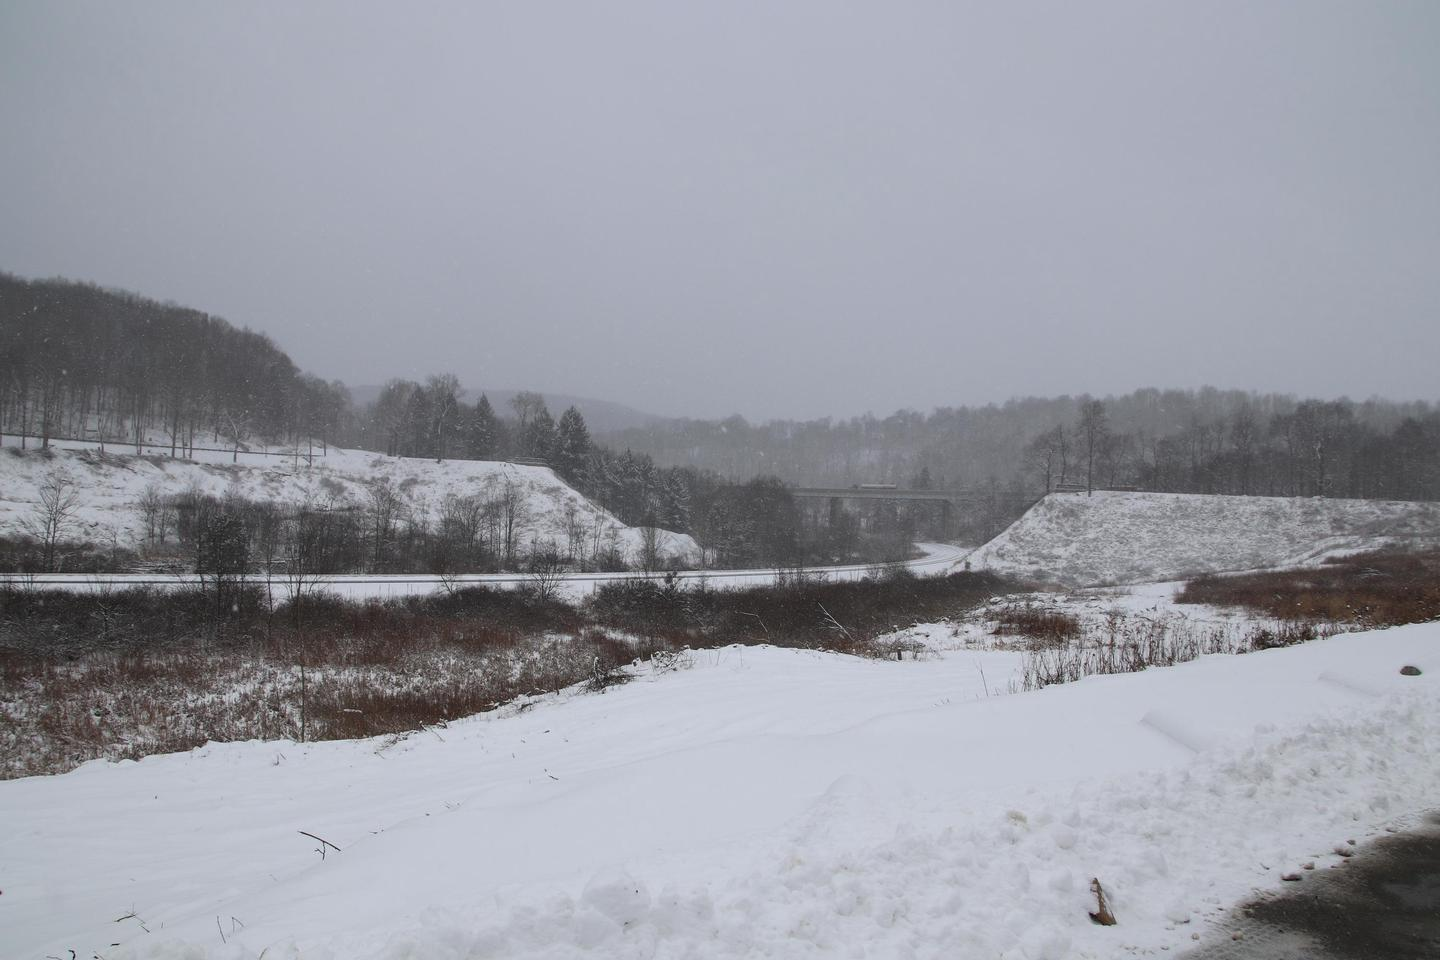 The remains of the South Fork DamRemains of the South Fork Dam with snow